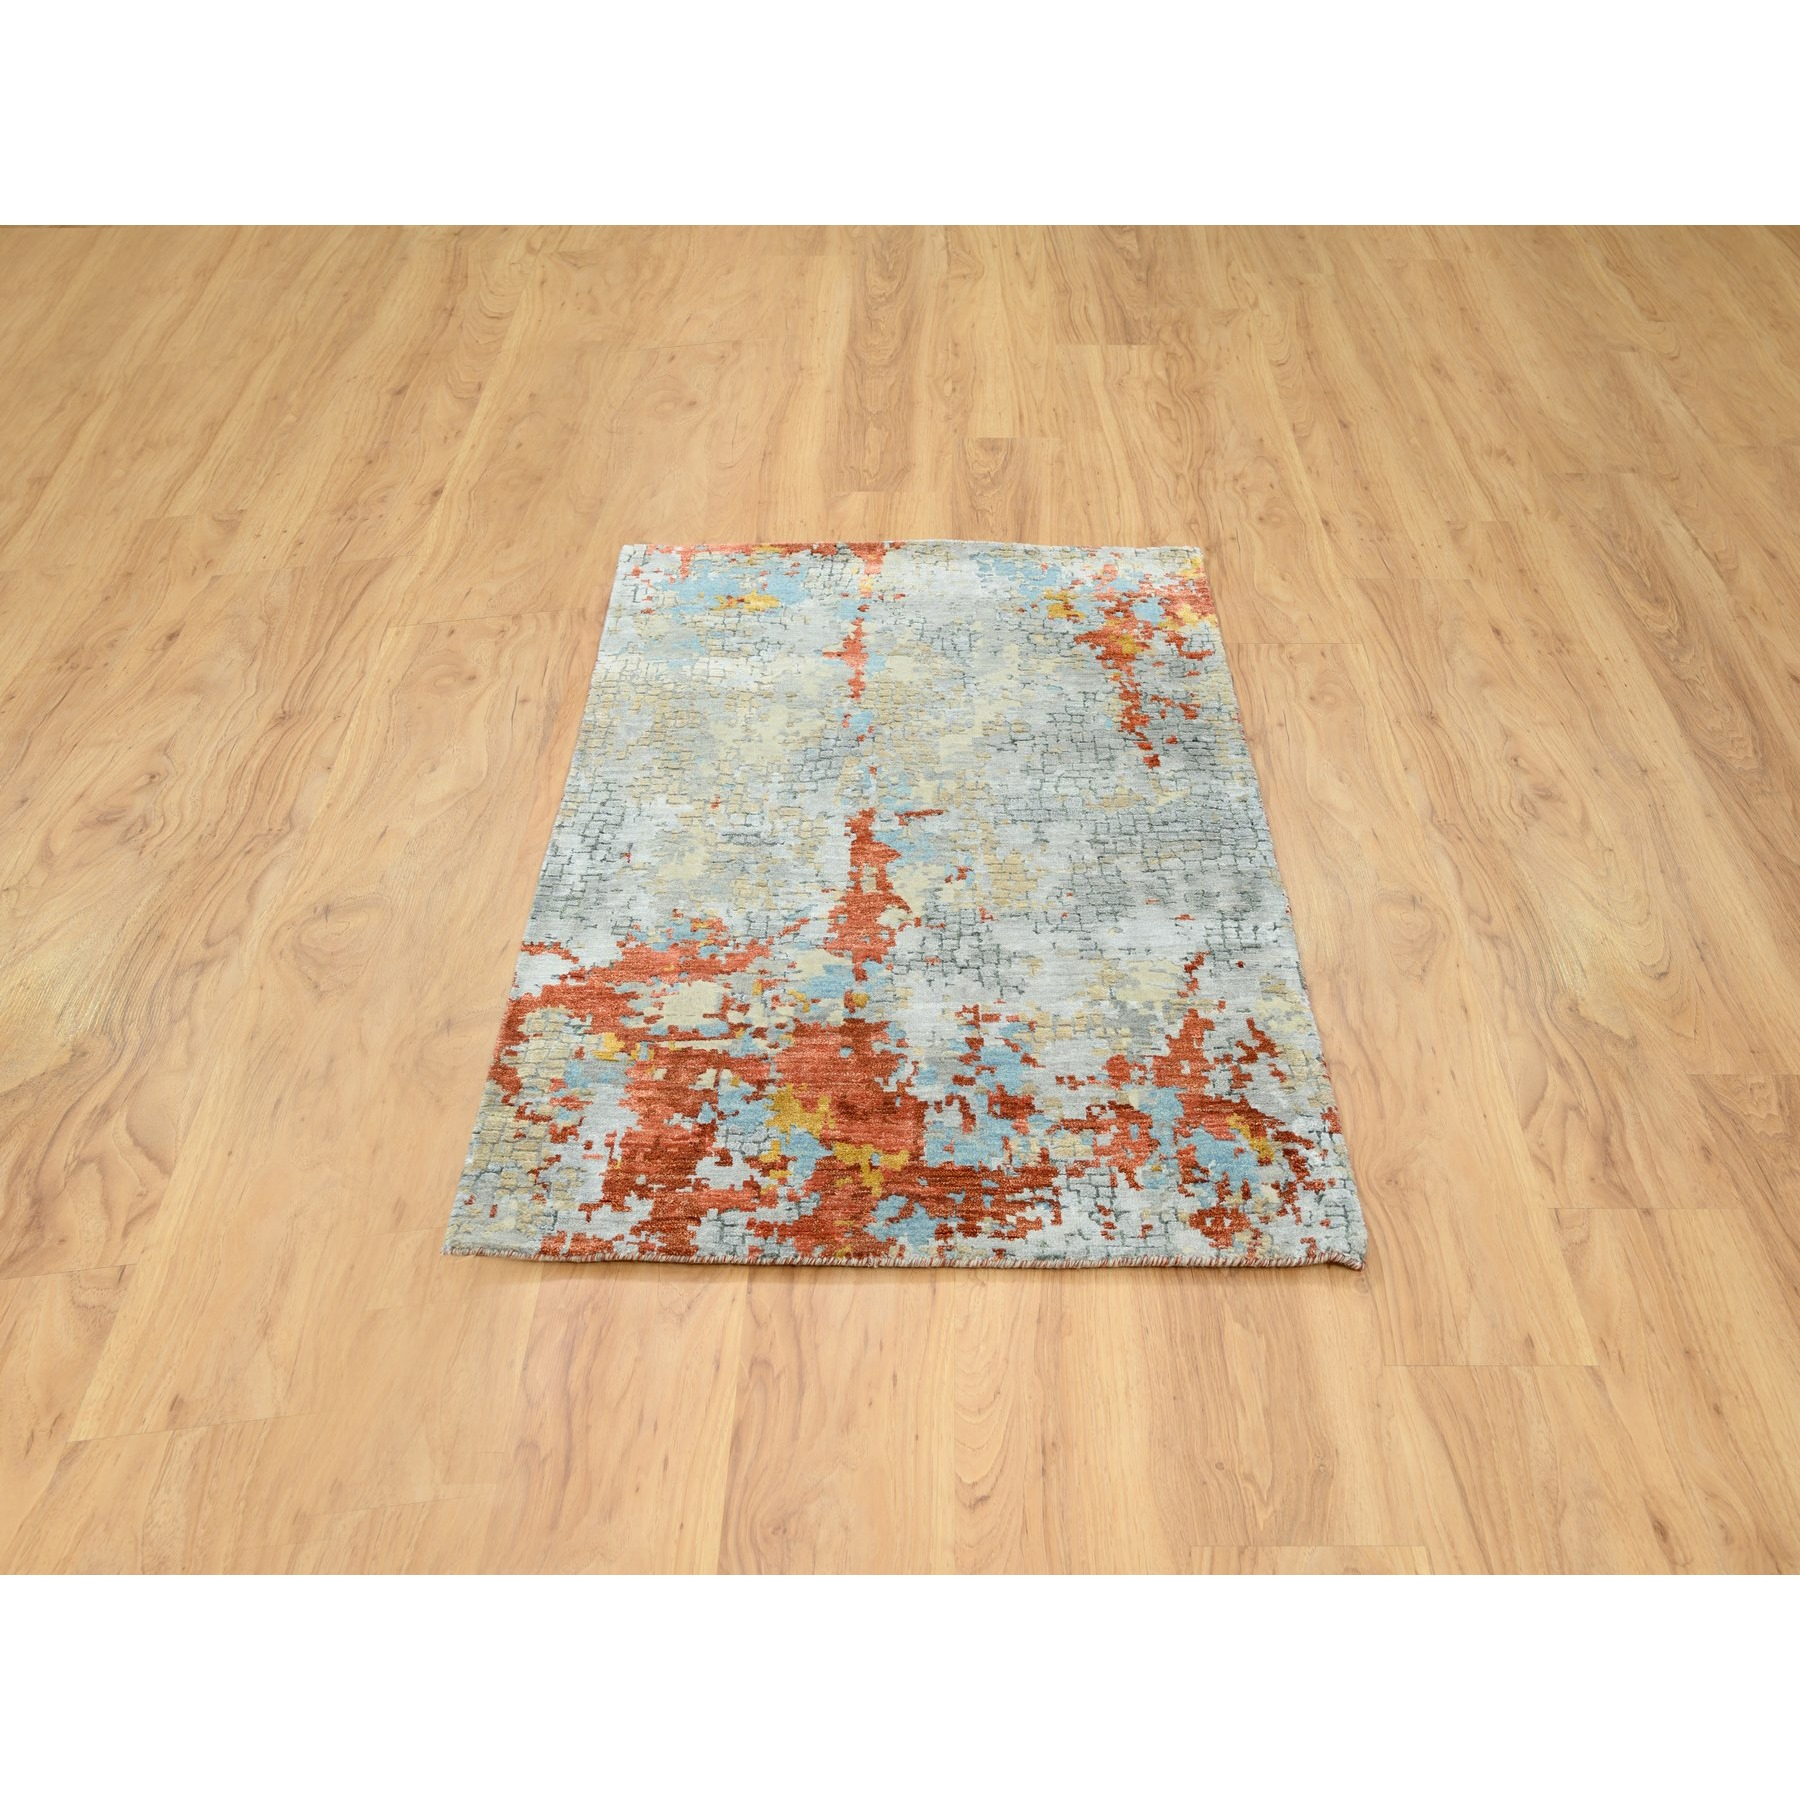 "3'x4'9"" Abstract Wool and Silk with Fire Mosaic Hand Knotted Oriental Rug"